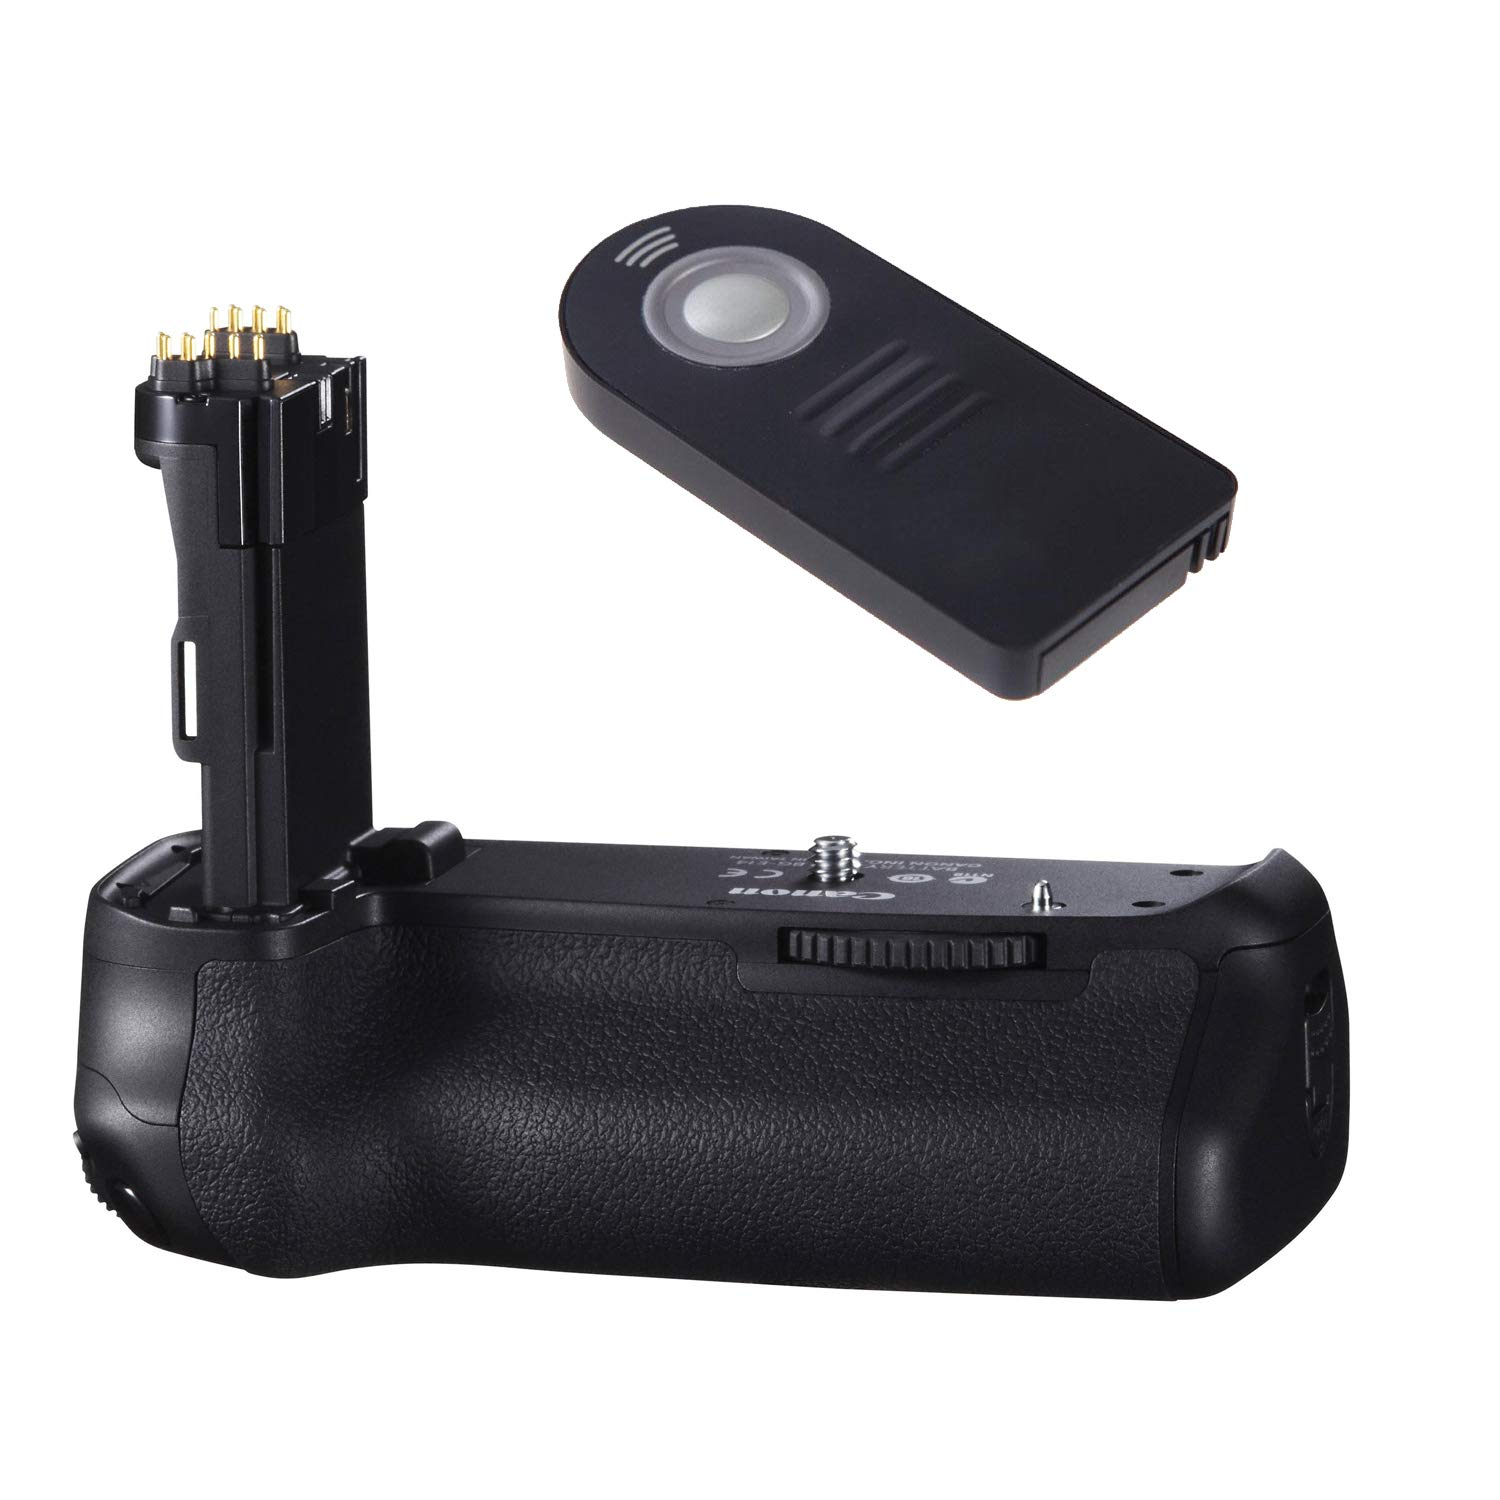 Canon BG-E14 Battery Grip for Canon EOS 70D and 80D DSLR Cameras with Wireless Shutter Release Remote